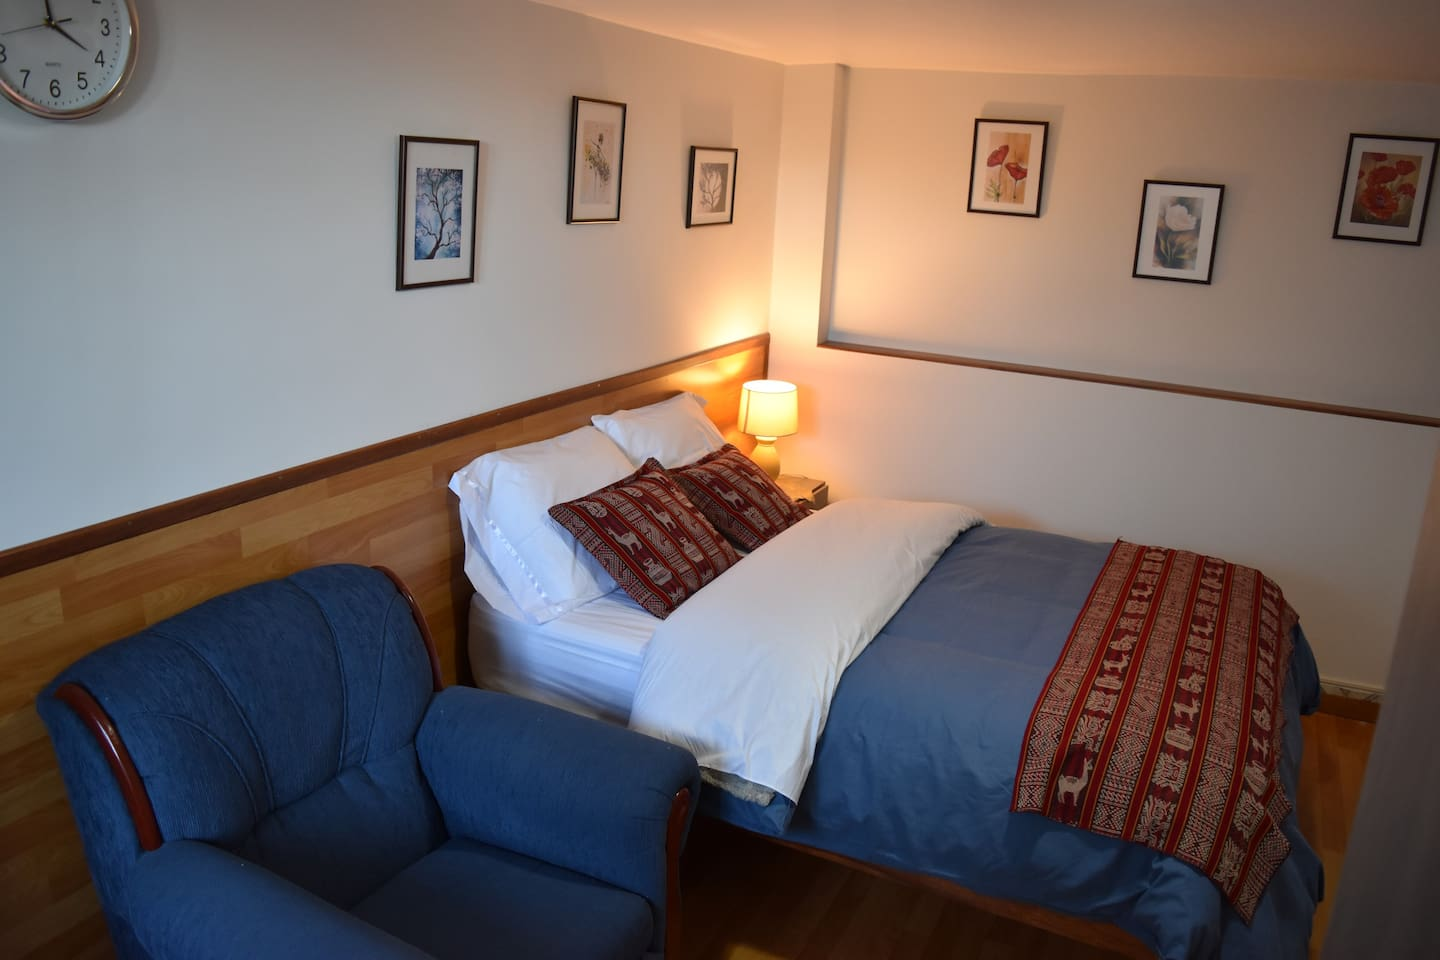 Pleasant stay in a room